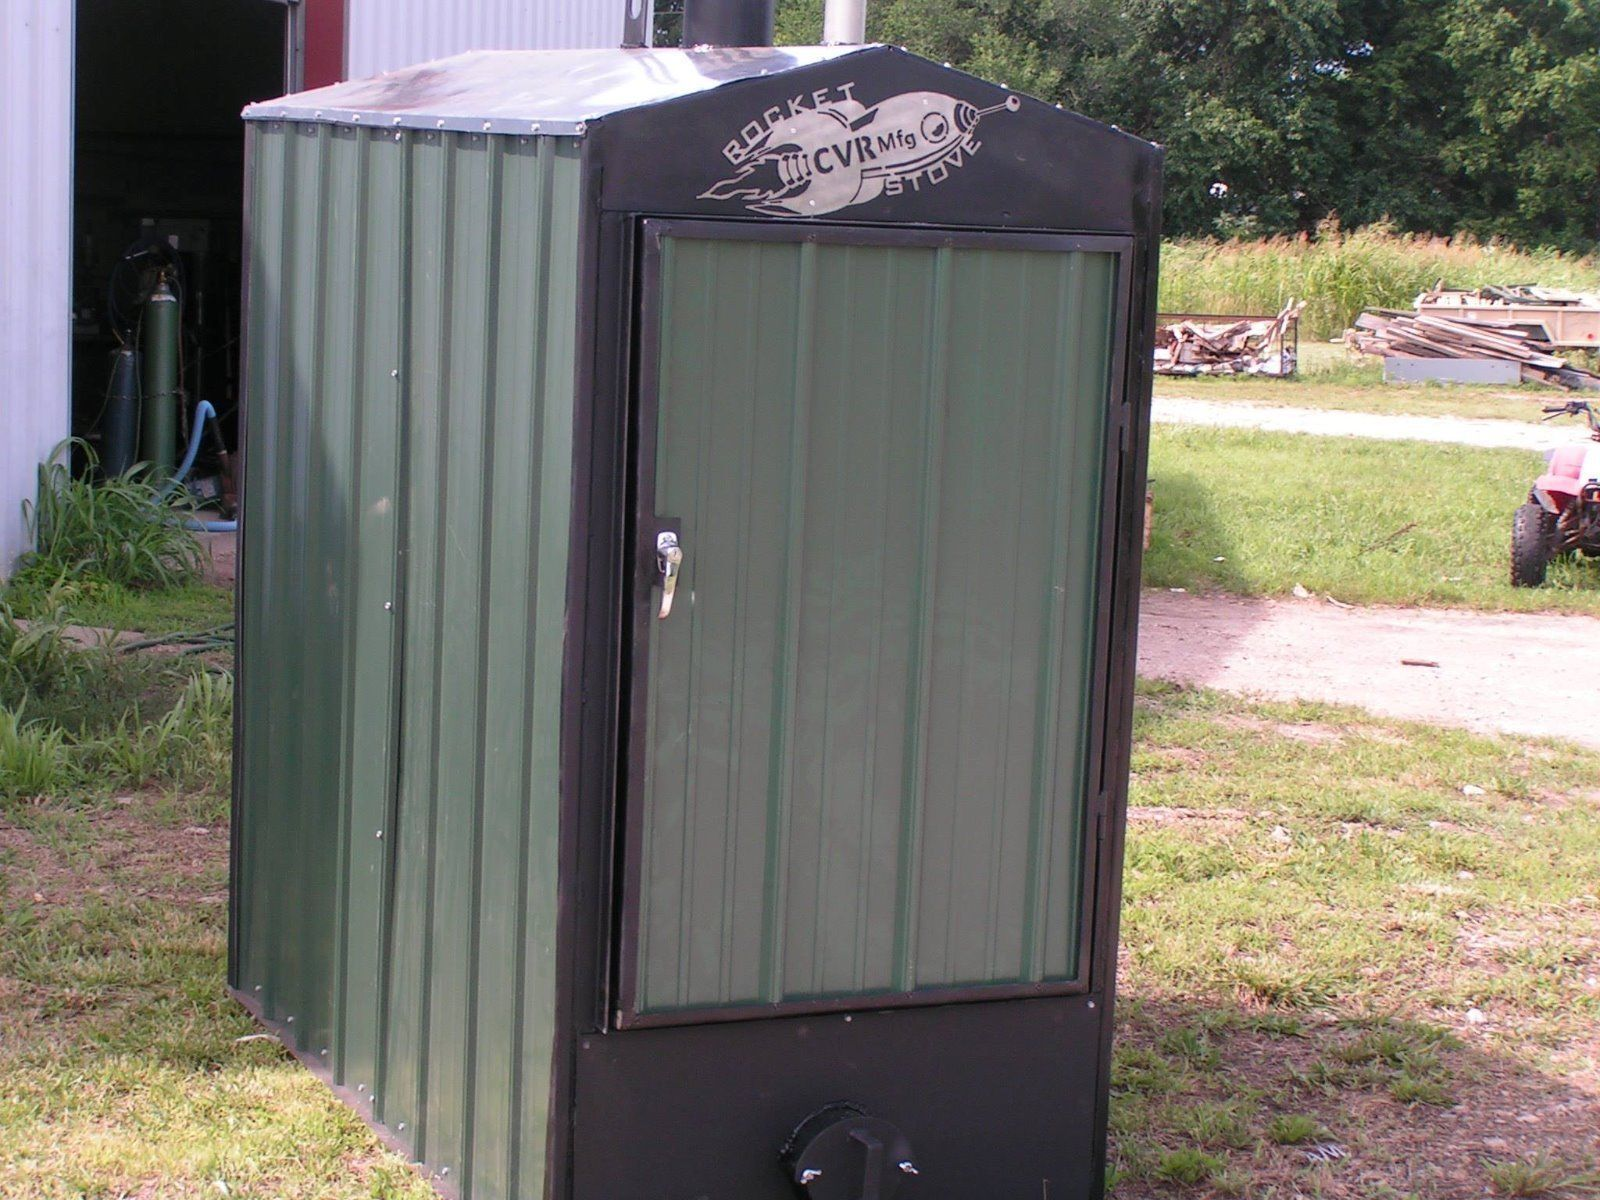 How to Install an Outdoor Wood Boiler